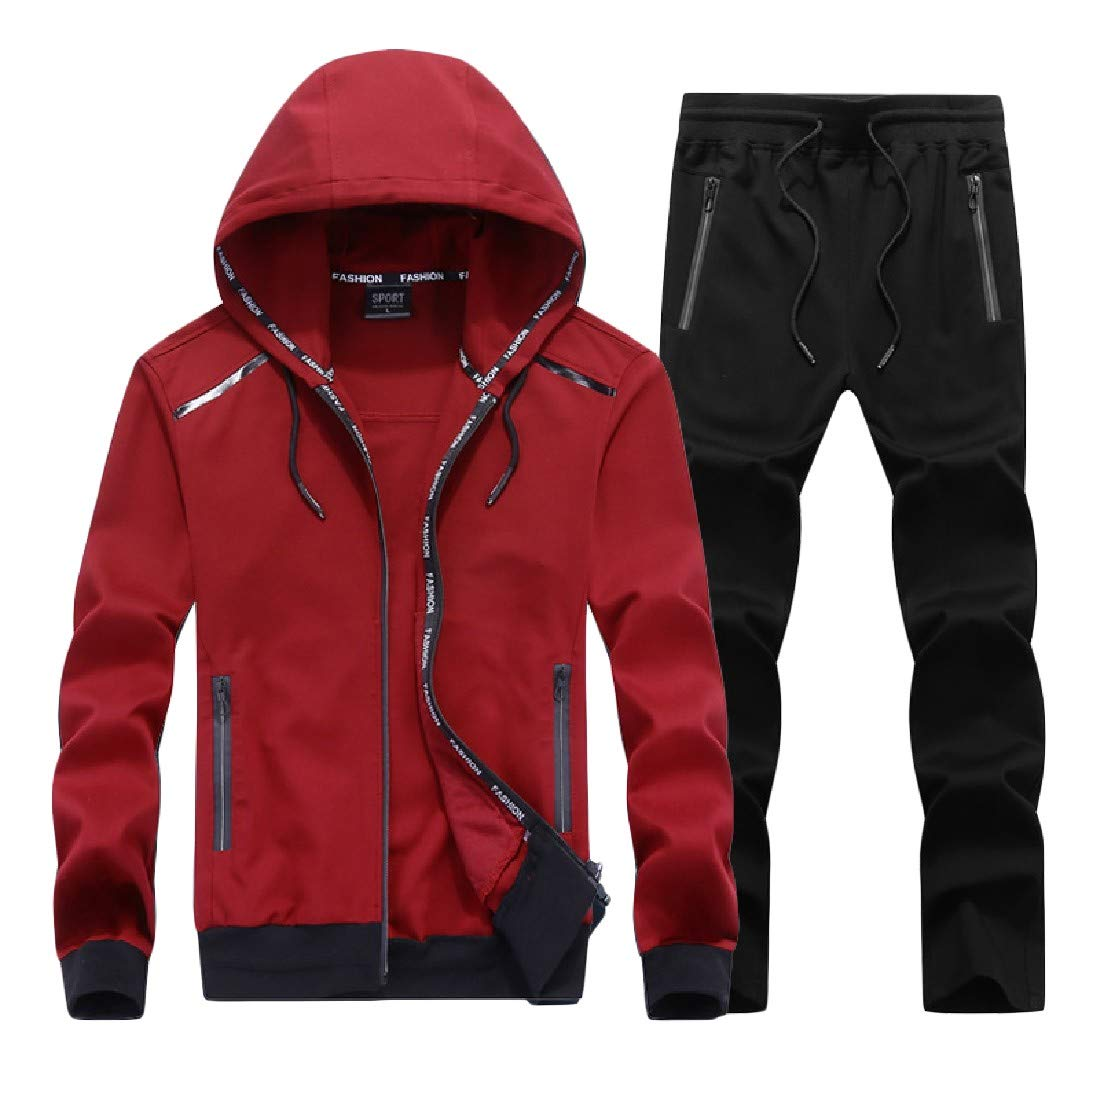 TaoNice Mens Plus Size Athletic Casual Vogue Pullover Sweatpants Set